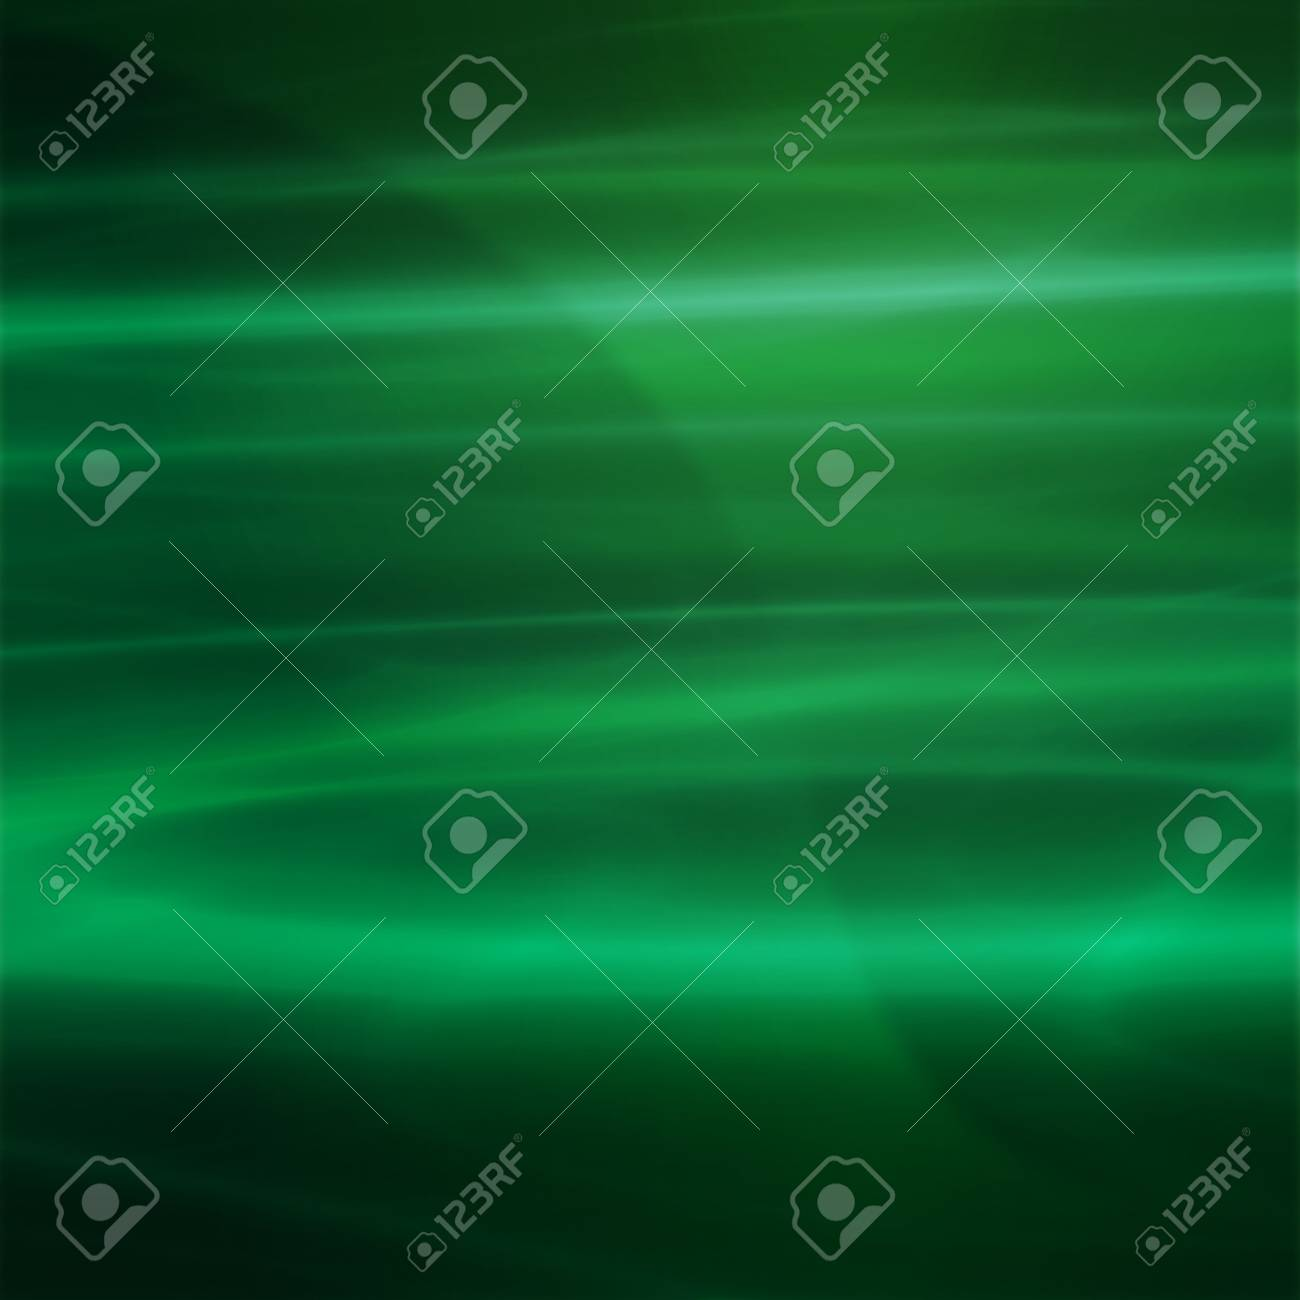 Abstract wallpaper illustration of wavy flowing energy and colors Stock Photo - 6365235